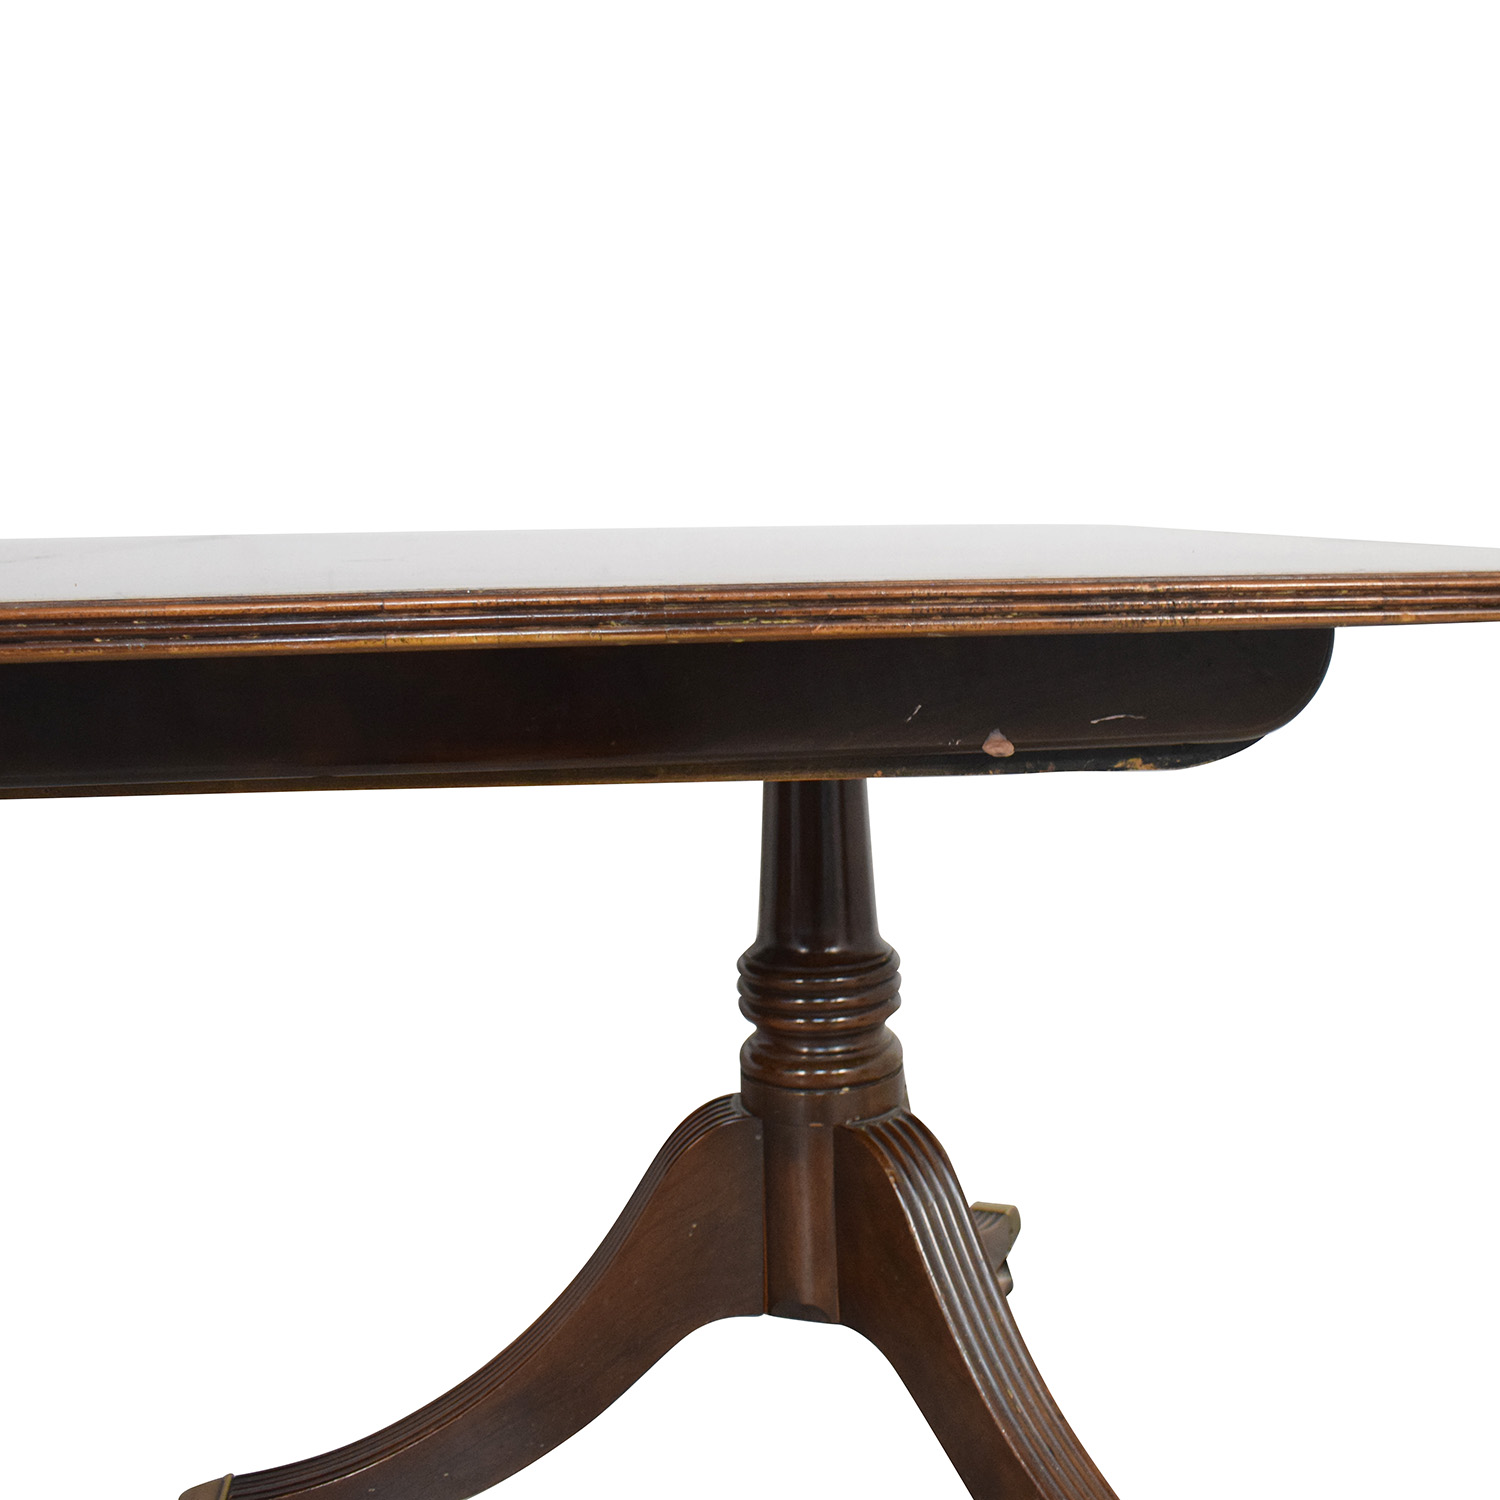 Vintage Dining Table second hand